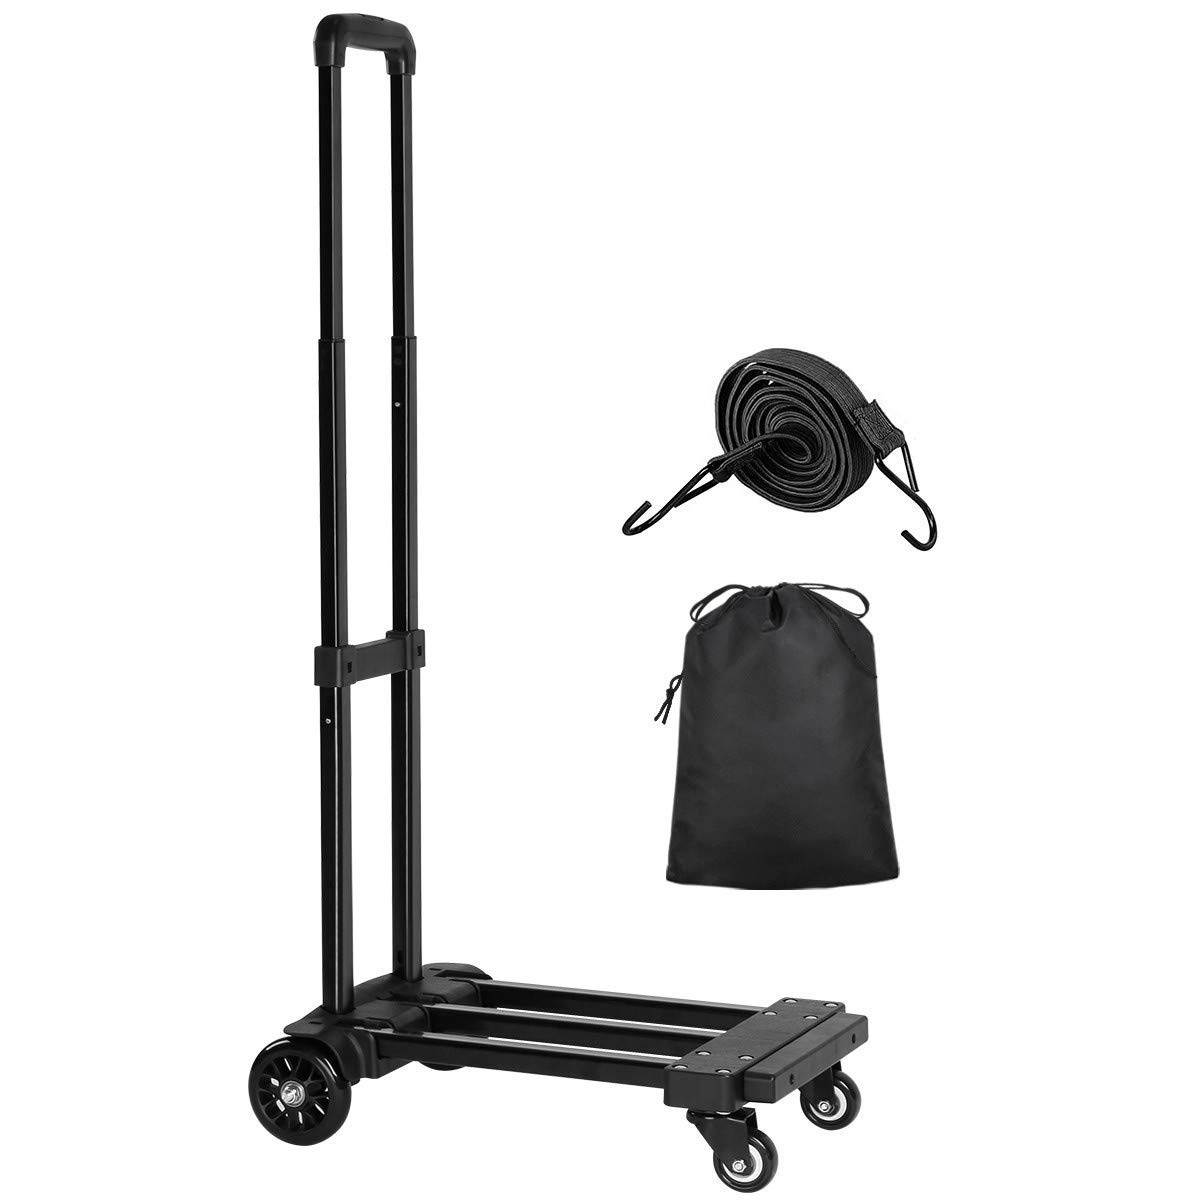 Folding Hand Truck, 155 lbs Heavy Duty Luggage Cart, 4 Wheels Solid Construction, Portable Fold Up Dolly by Orange Tech, Compact and Lightweight for Luggage, Personal, Travel, Moving and Office Use by Orange Tech